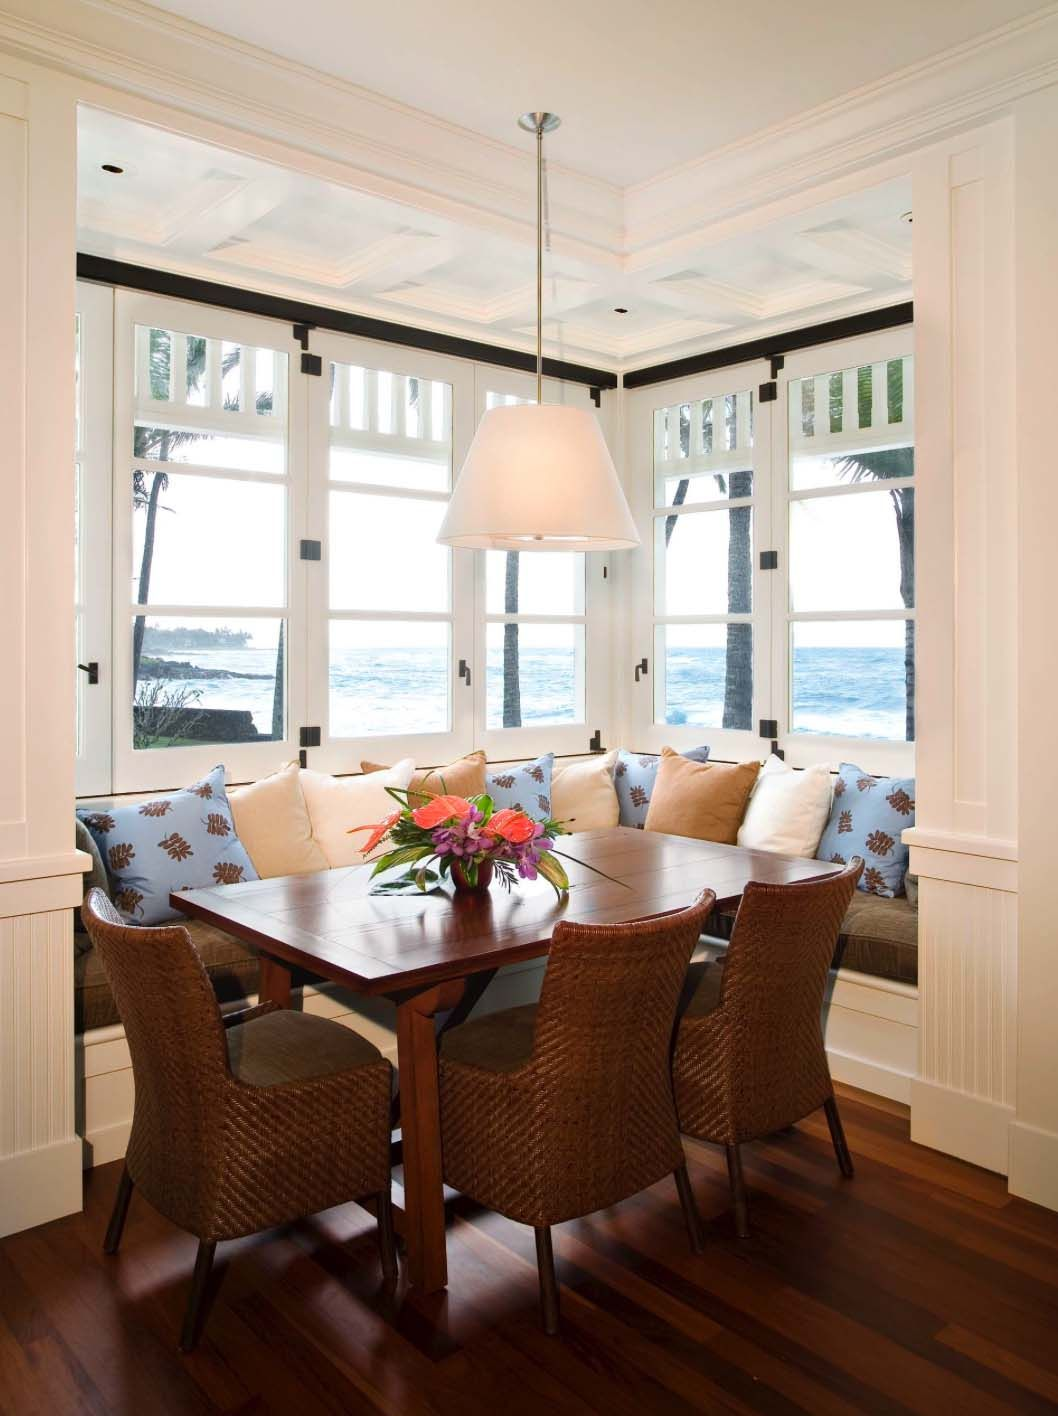 Window nook decorating ideas   window nooks framing spectacular views  window spaces and